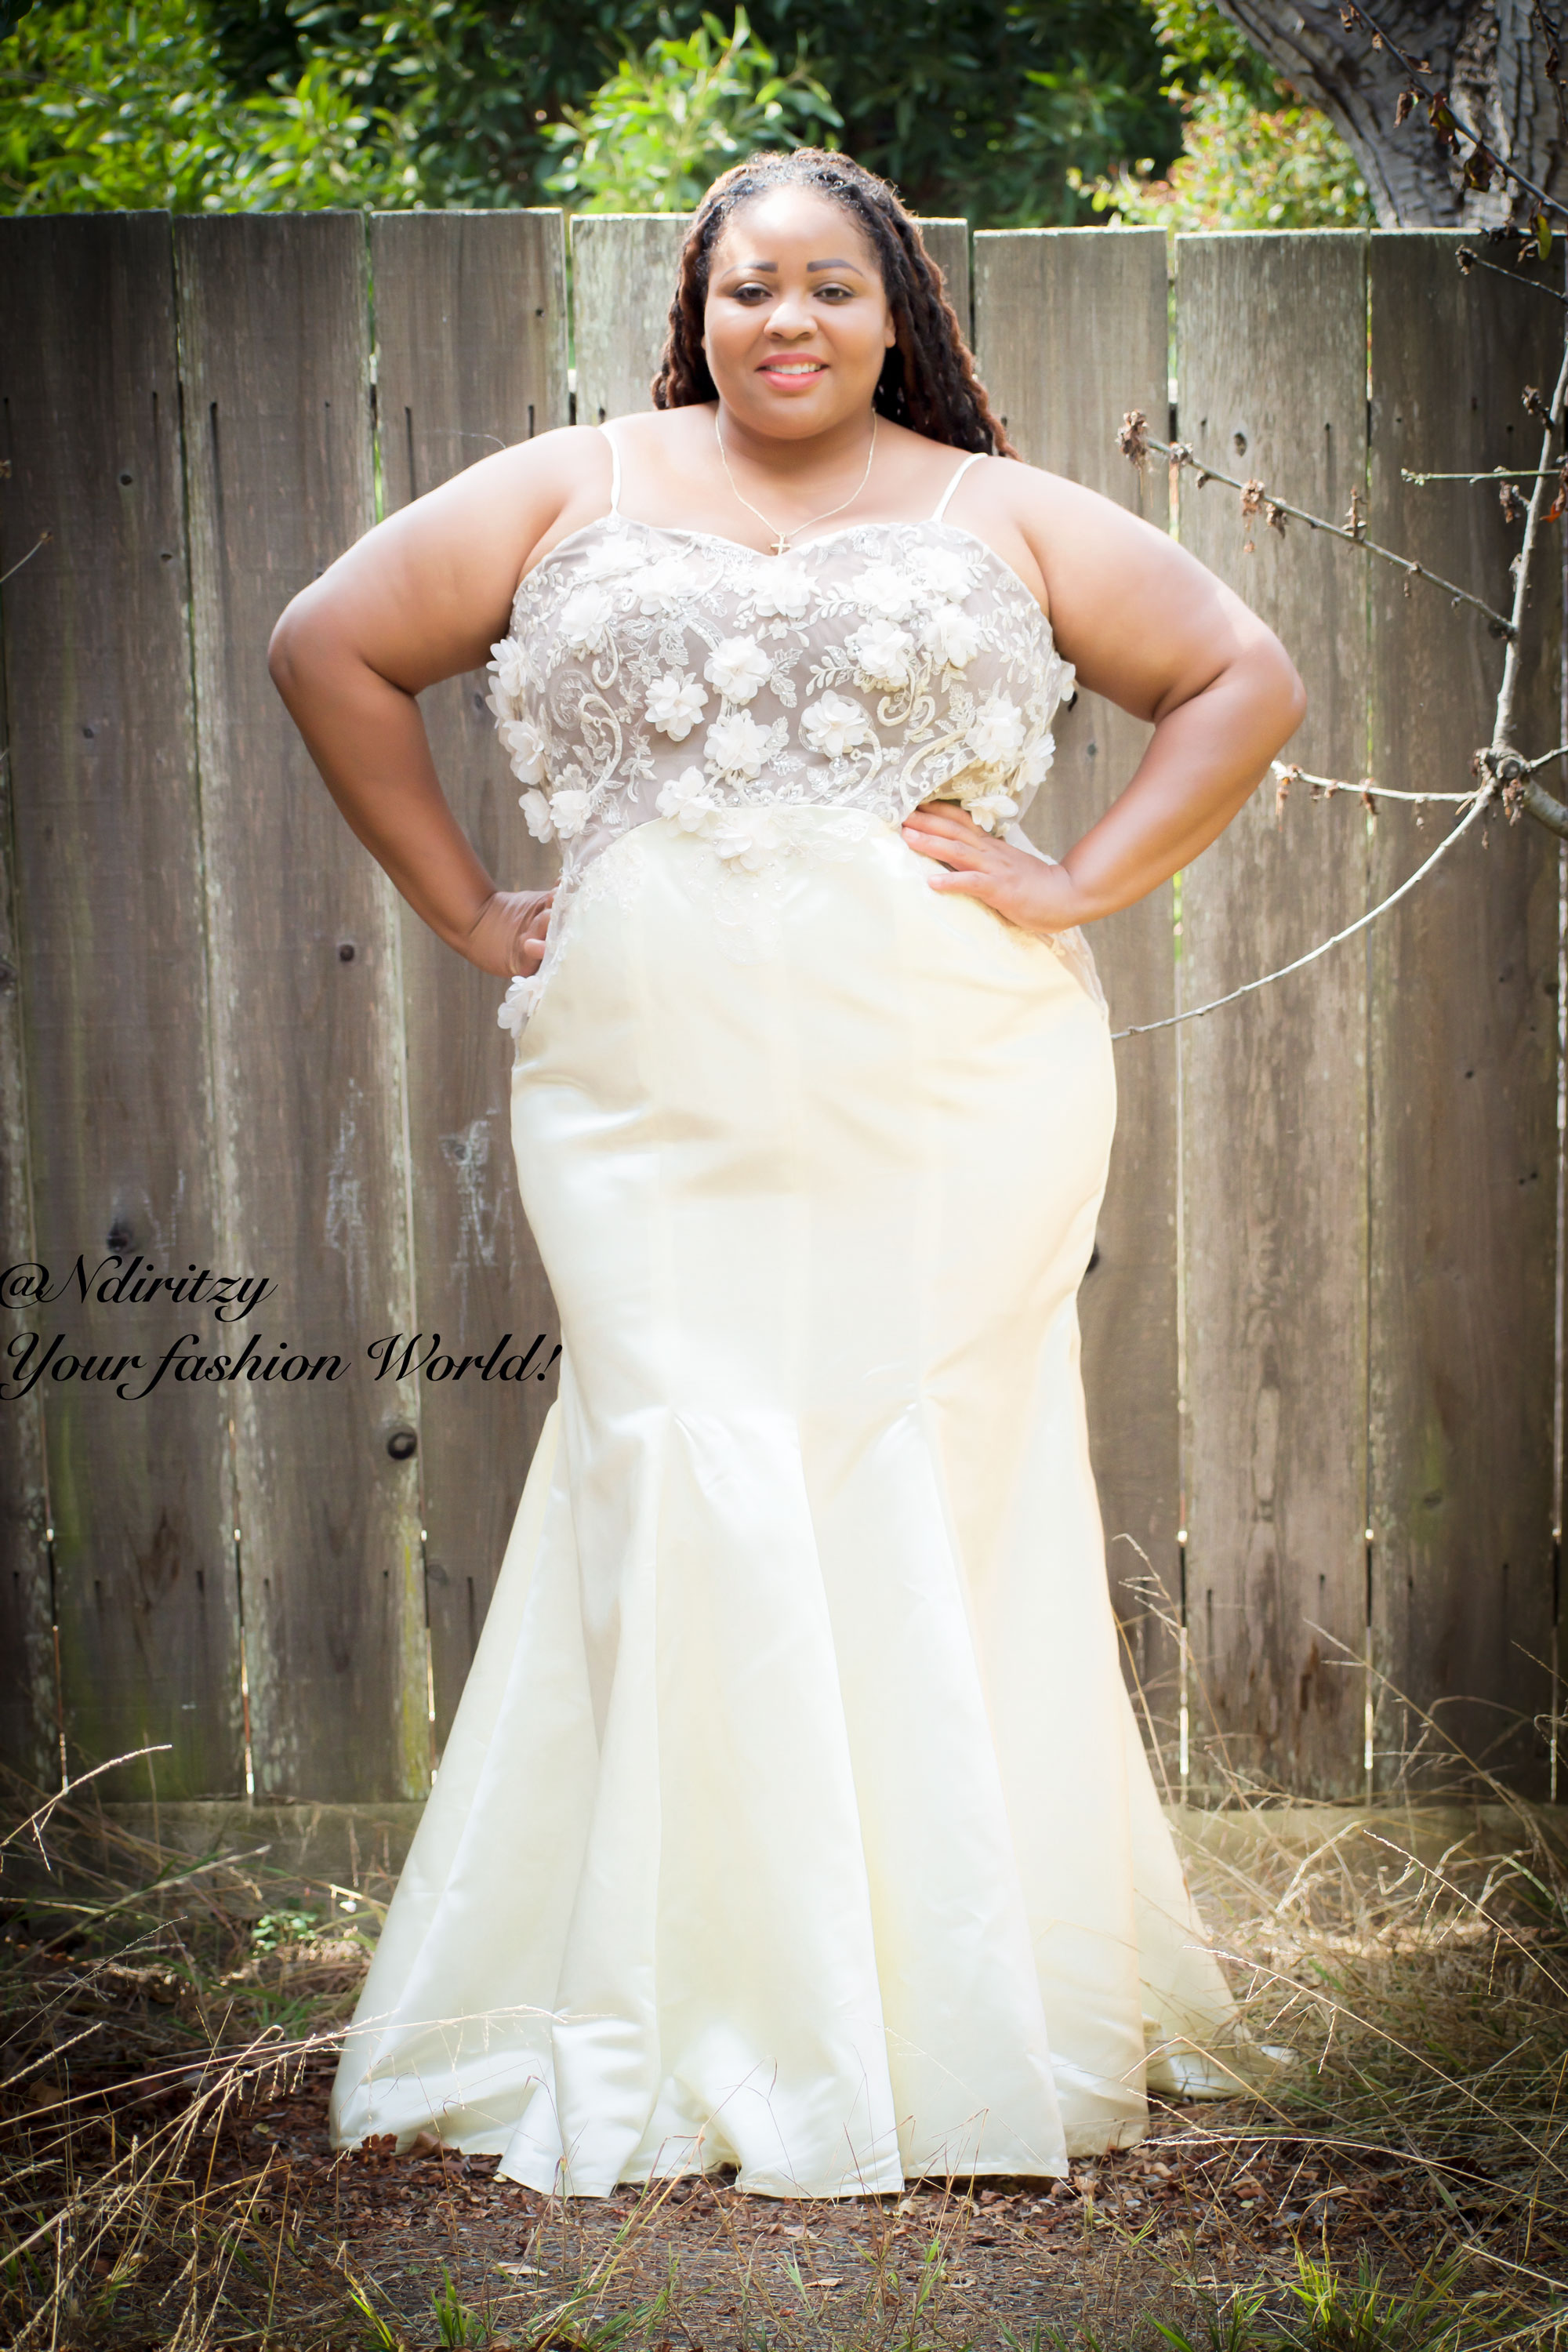 Plus size bridal dress – NdiRitzy